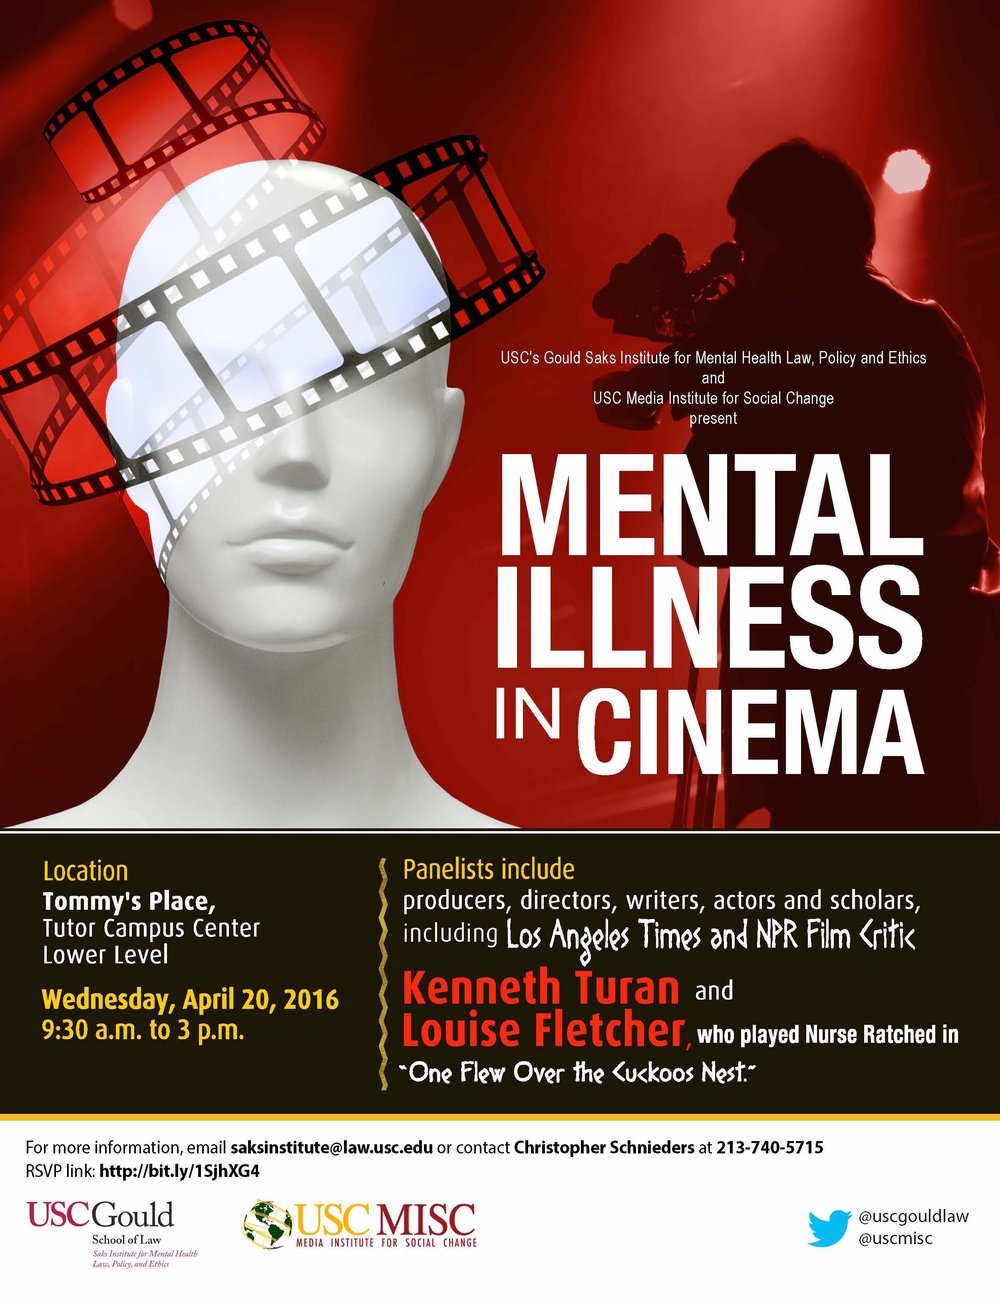 USC MISC Saks Institute Present Mental Illness in Cinema